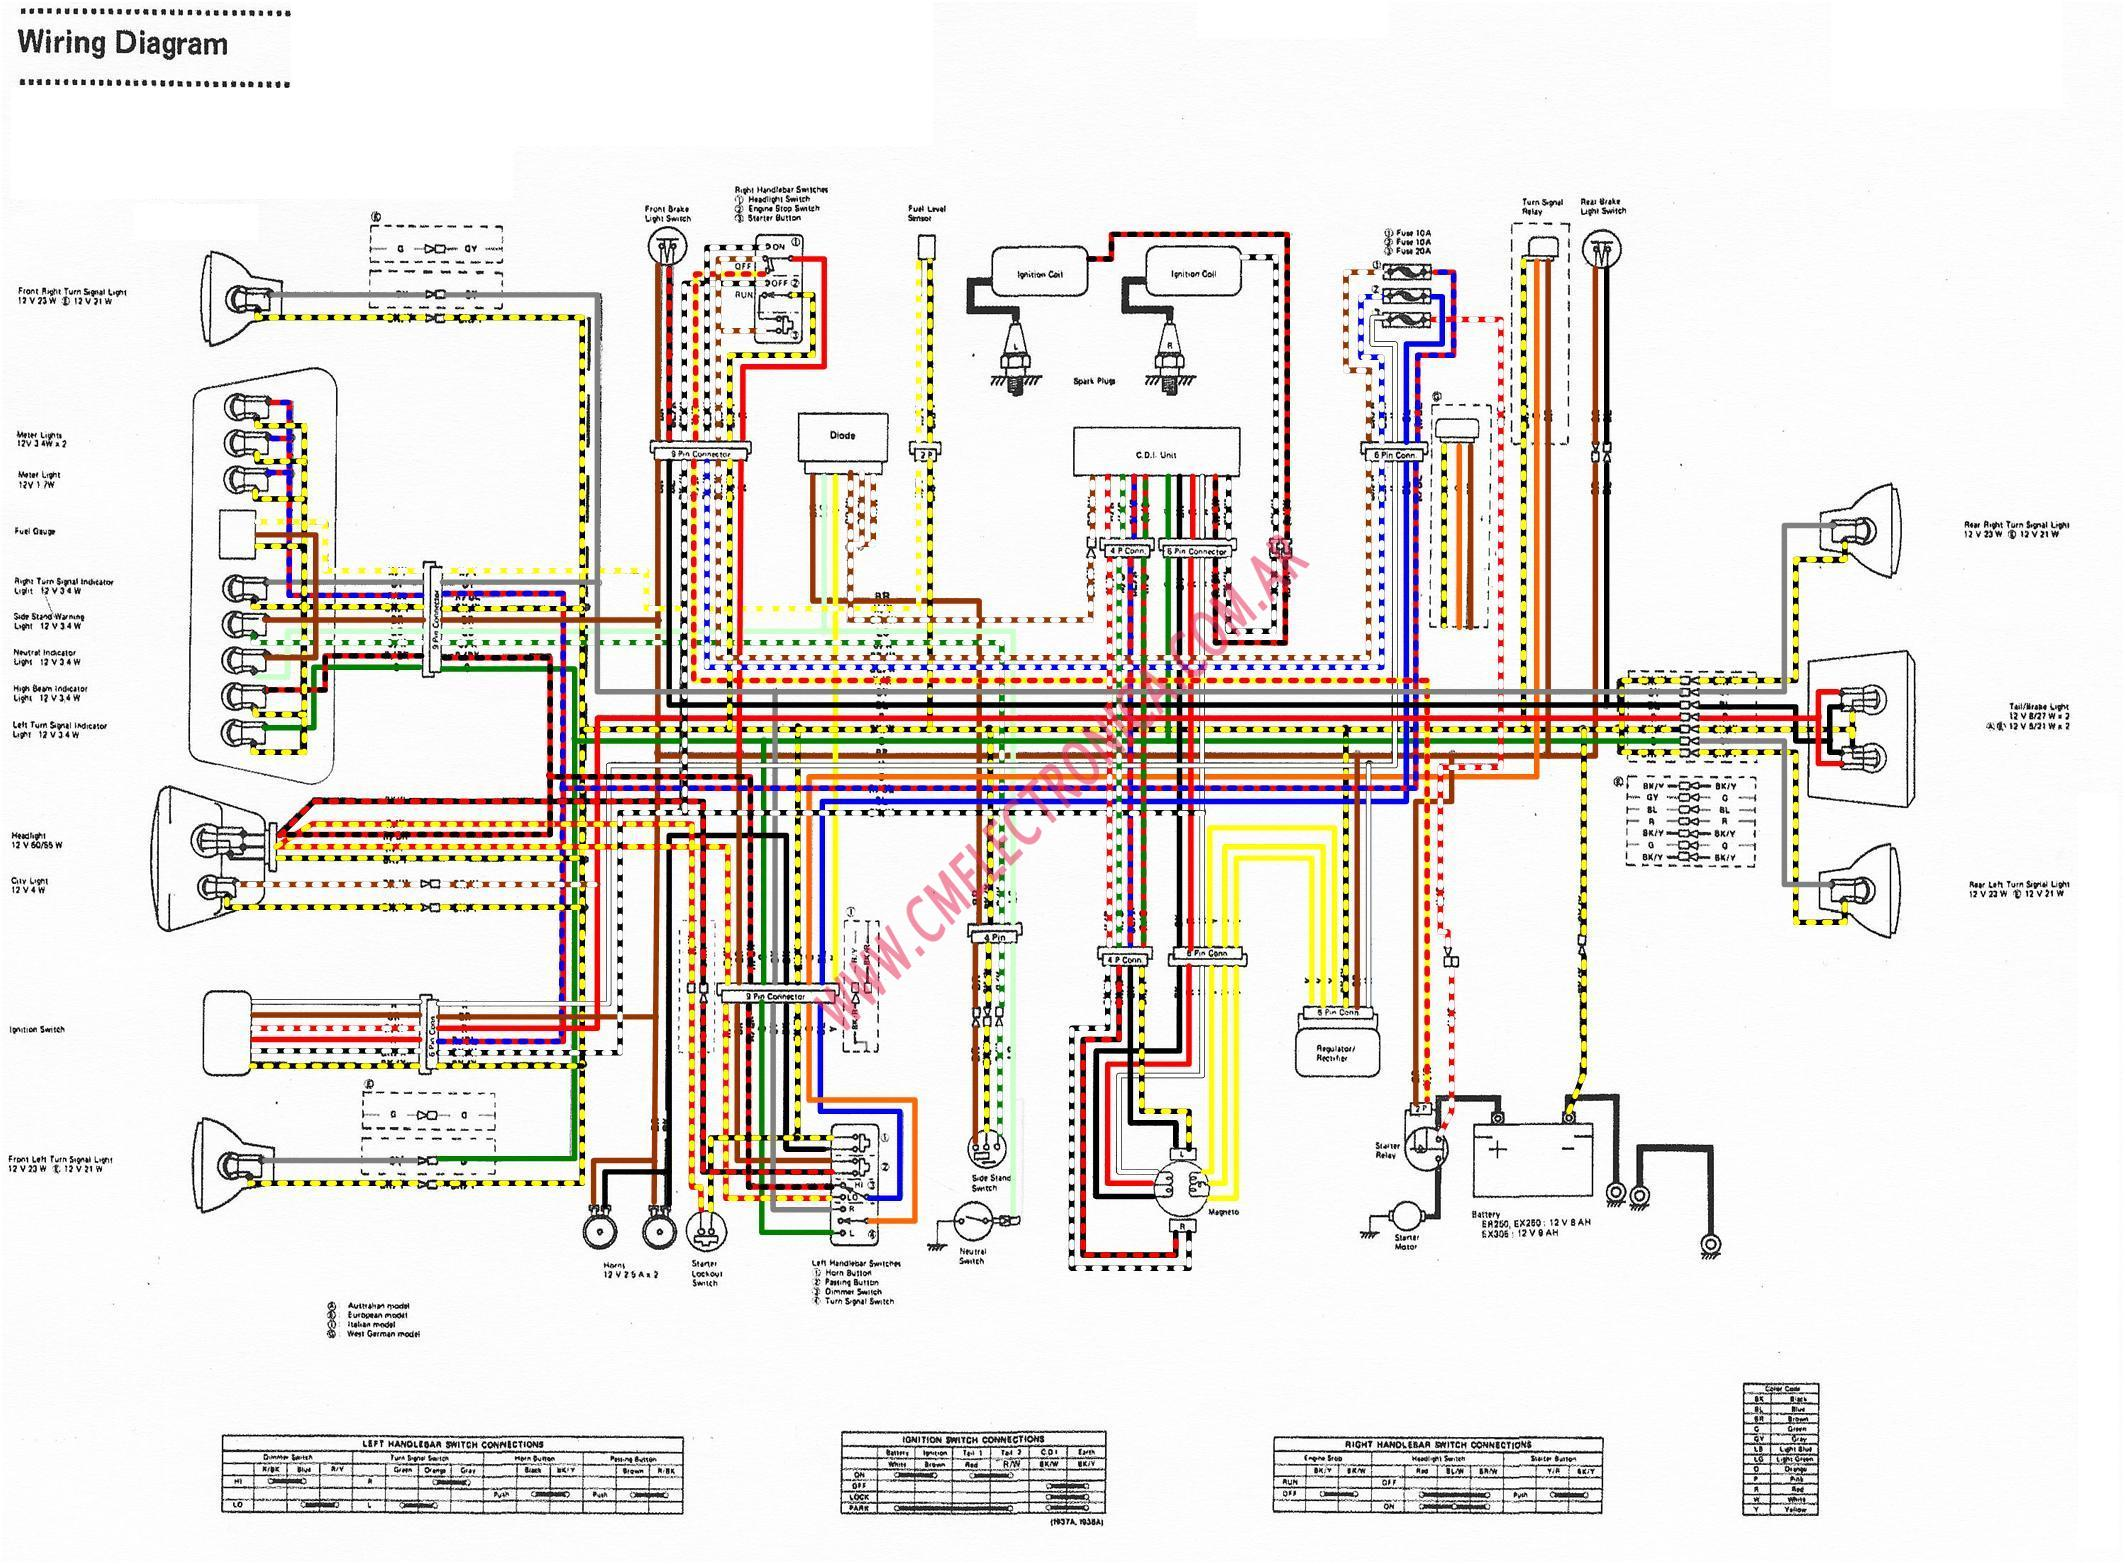 ninja 250 wiring diagram [wrg-2228] crf 250r wiring diagram